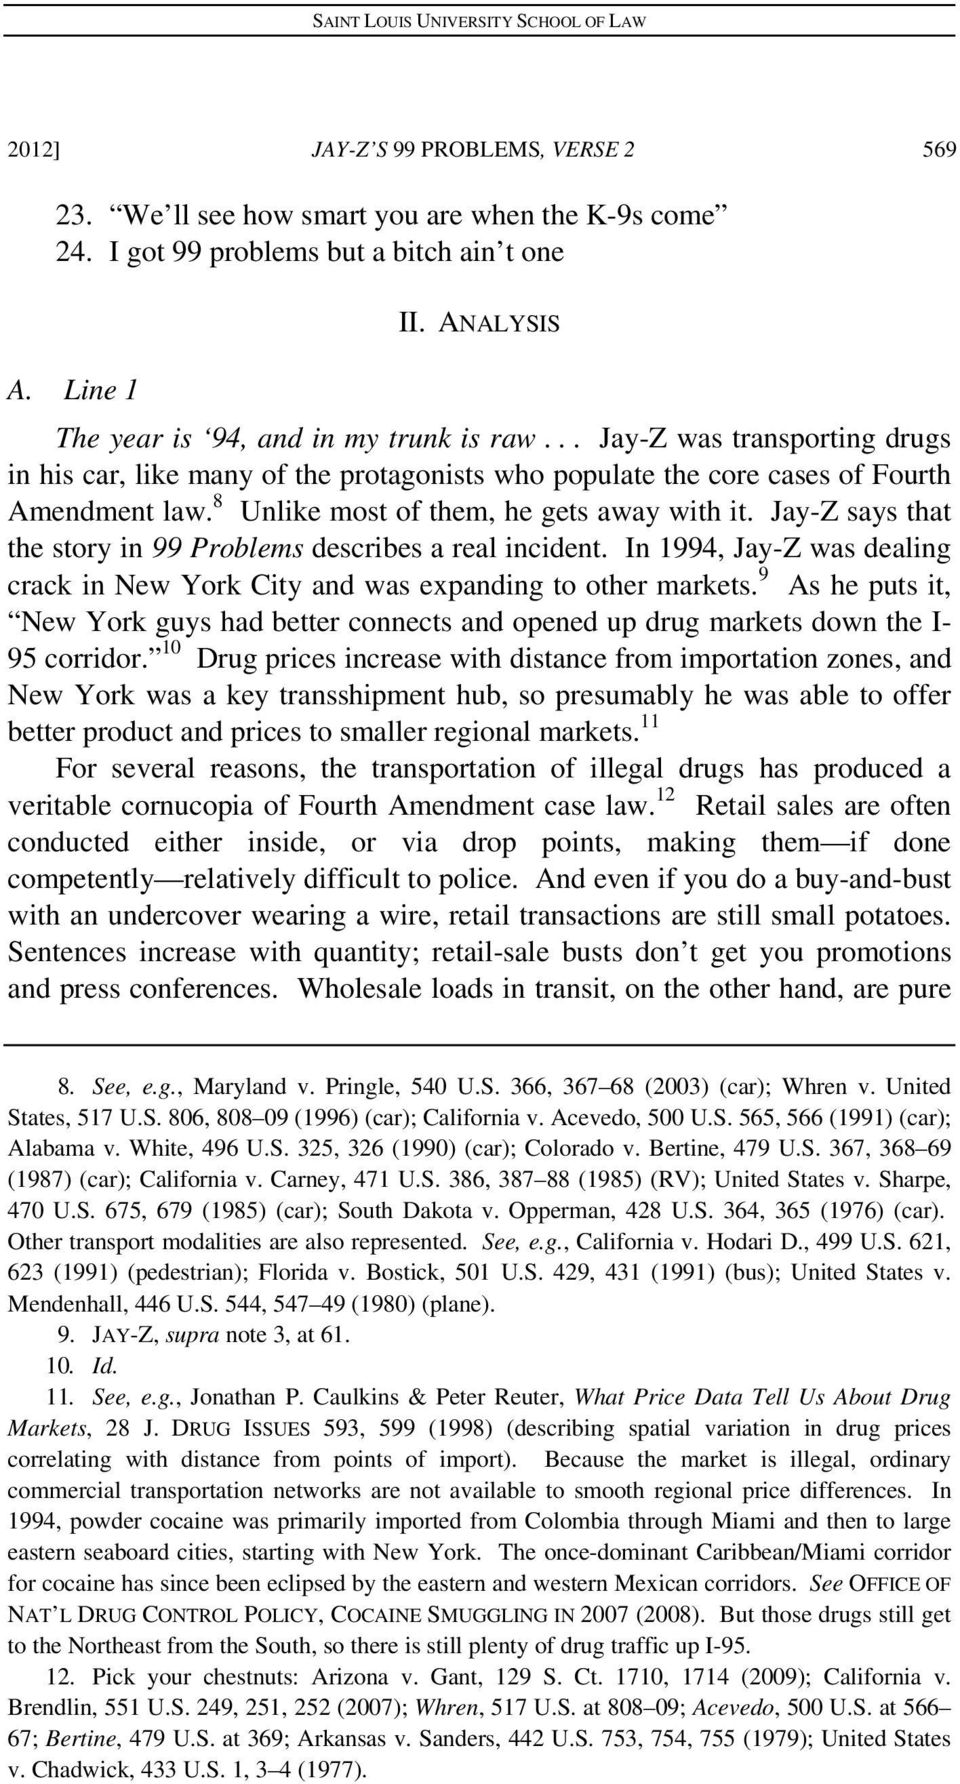 Jay-Z says that the story in 99 Problems describes a real incident. In 1994, Jay-Z was dealing crack in New York City and was expanding to other markets.